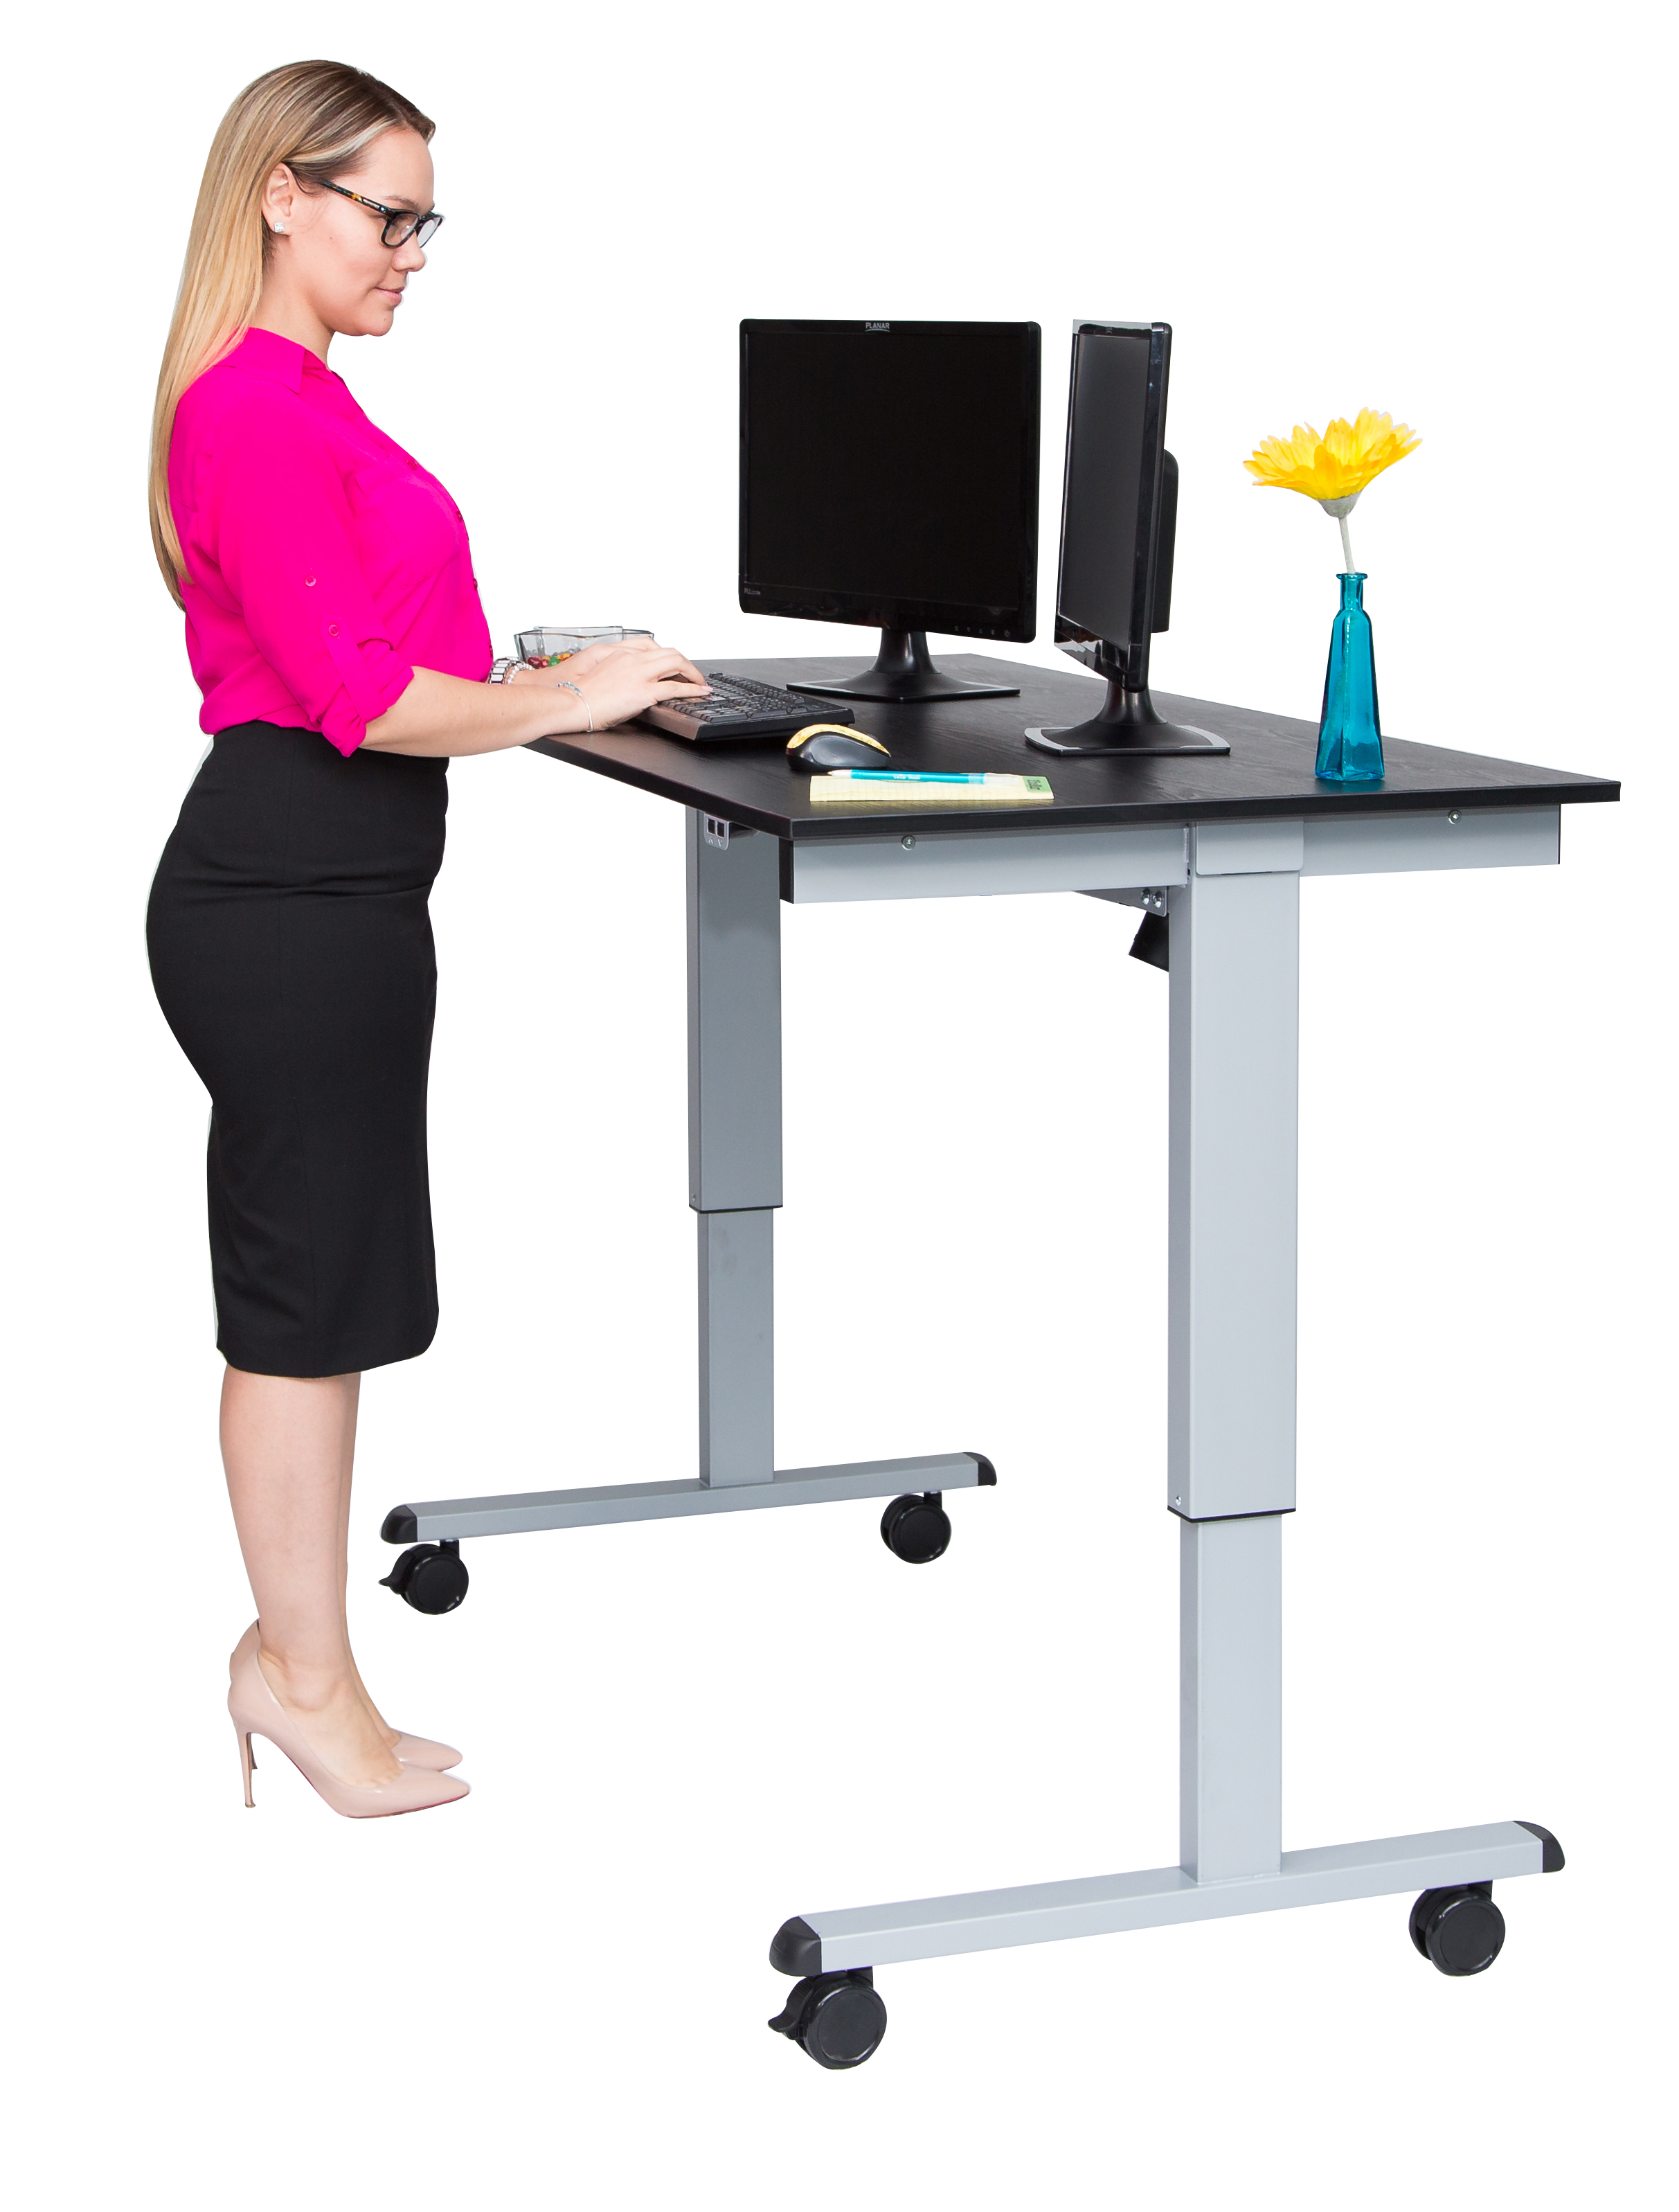 Luxor 60 Electric Standing Desk NotSittingcom : STANDE 60 AG BO9819 Height Adjustable <strong>Back Chair</strong> from notsitting.com size 2425 x 3194 jpeg 1139kB